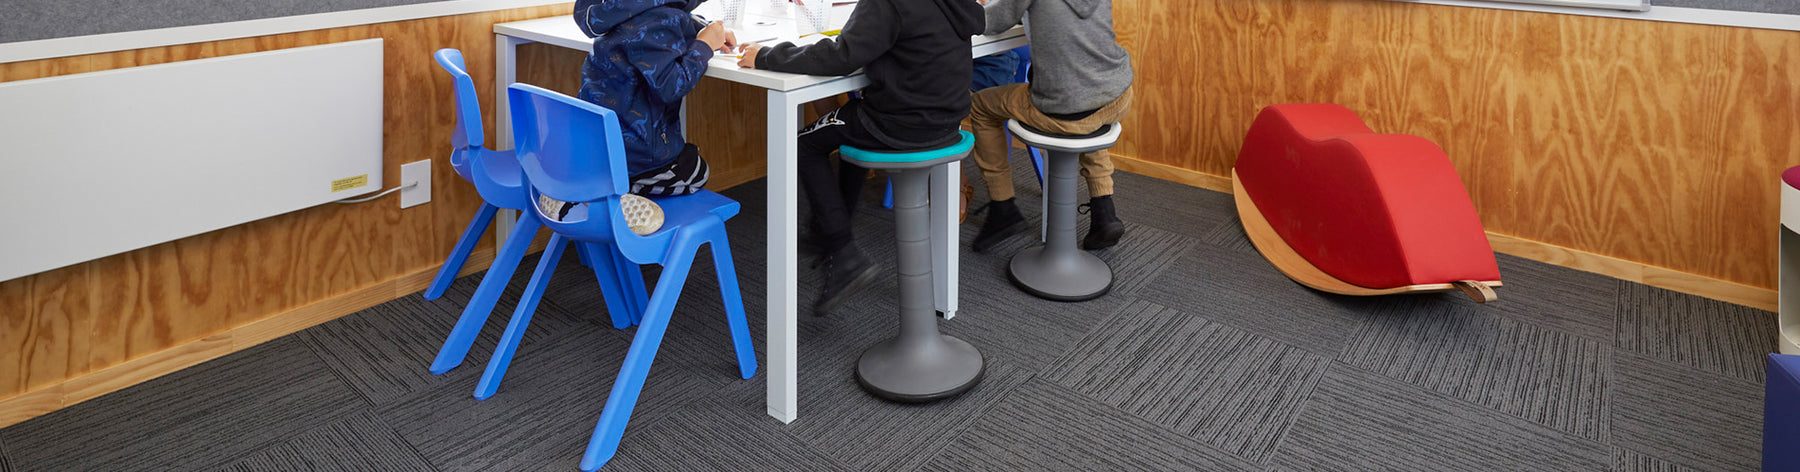 How active seating can benefit children with autism or learning disabilities